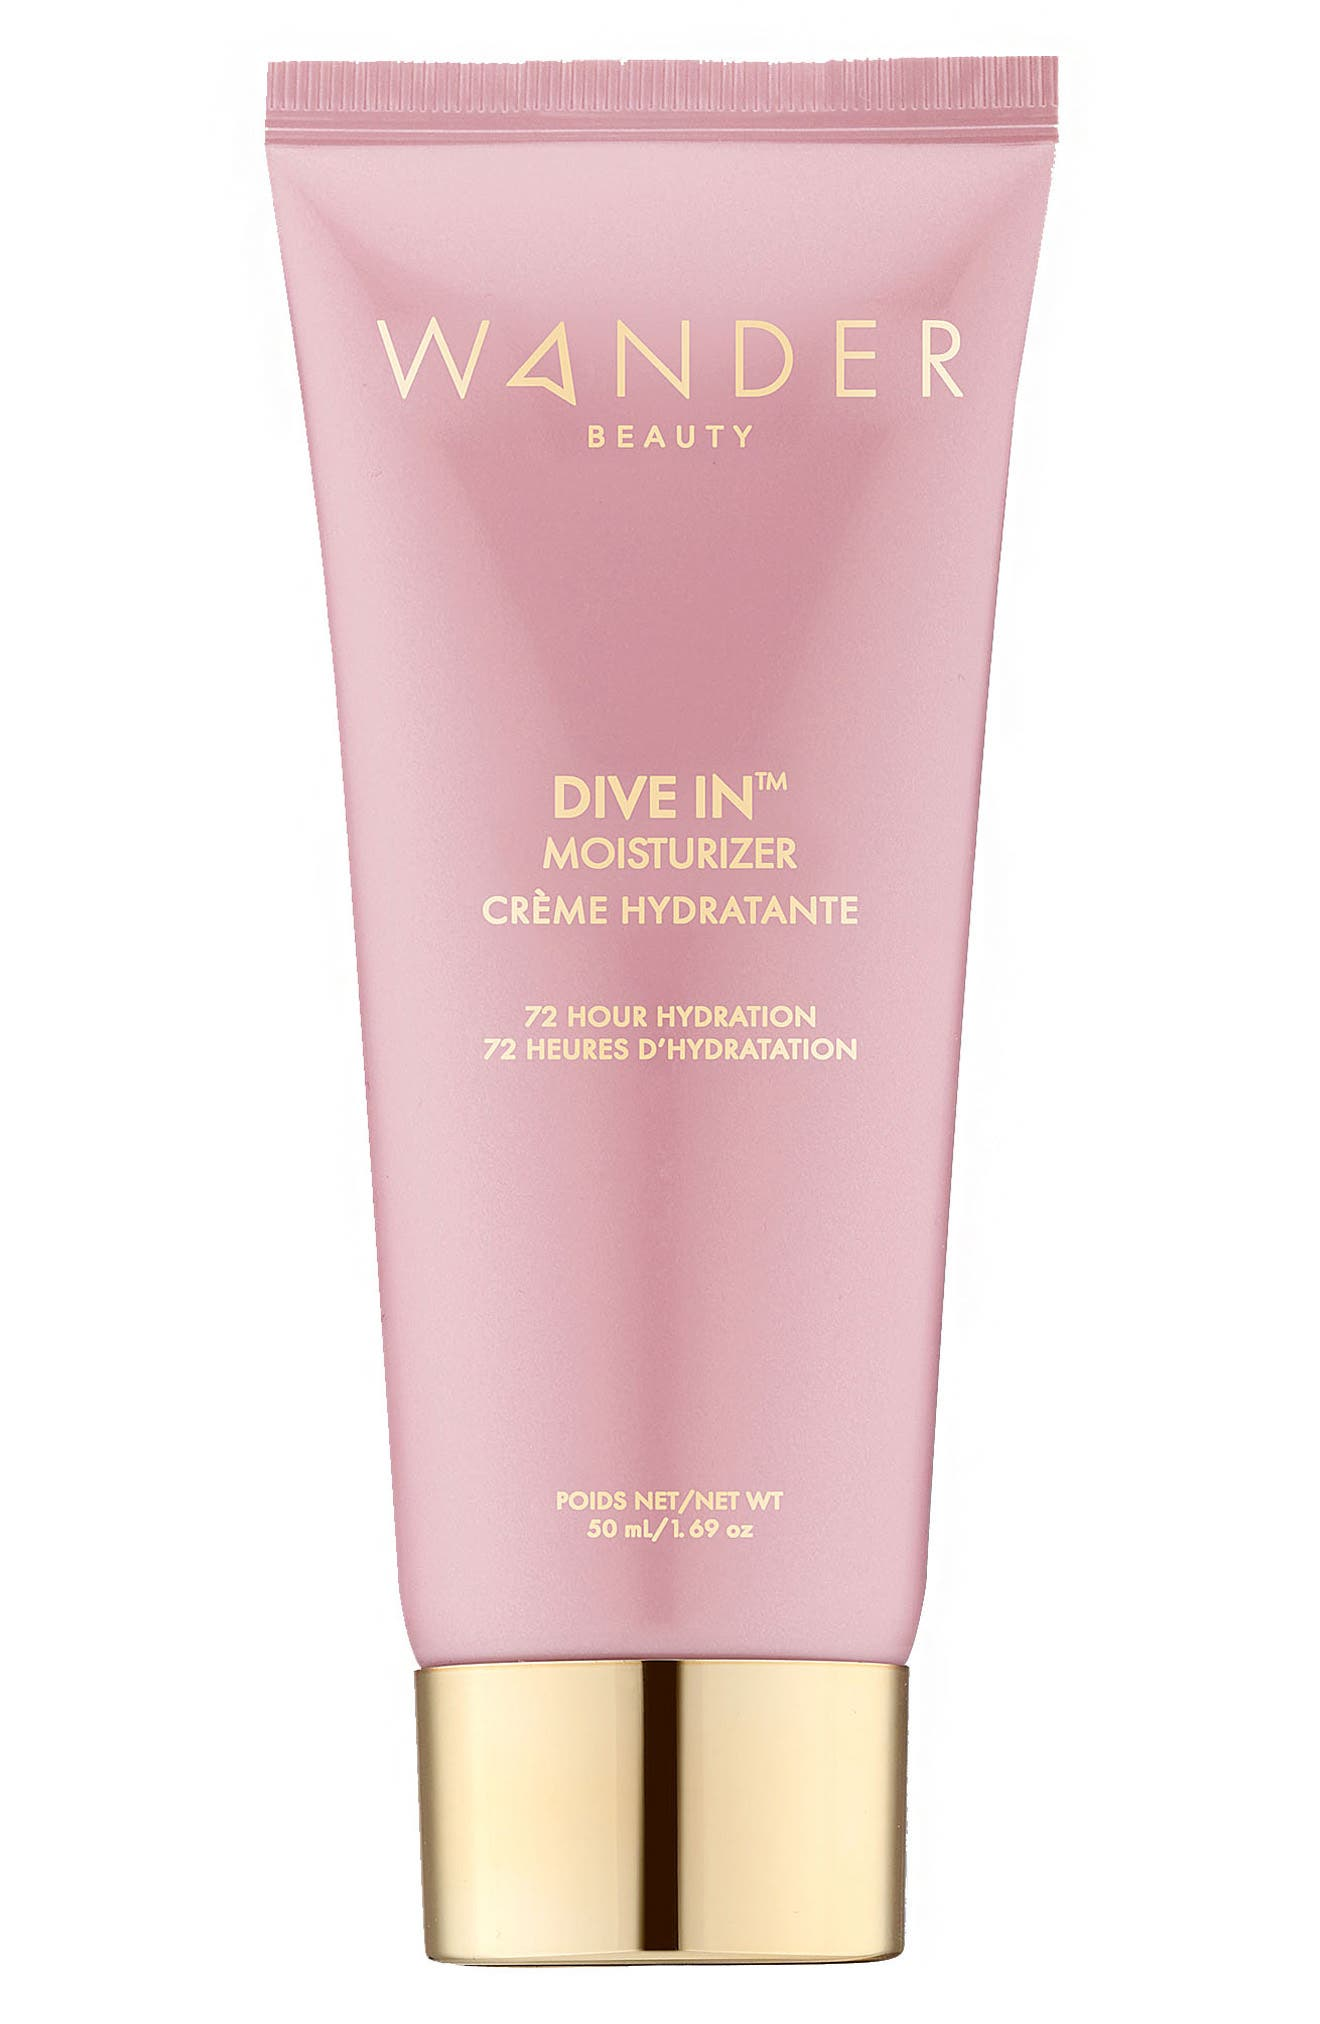 What it is: A lightweight moisturizer that helps you dive into 72 hours of moisture. What it does: It\\\'s enriched with Pentavitin and 13 fruit extracts that work to hydrate, brighten and protect for healthier, glowing skin. It\\\'s also infused with acai fruit antioxidants to help tighten the skin and help reduce the appearance of fine lines, leaving your skin feeling youthful and nourished. How to use: Apply a pea-sized amount onto a clean face and